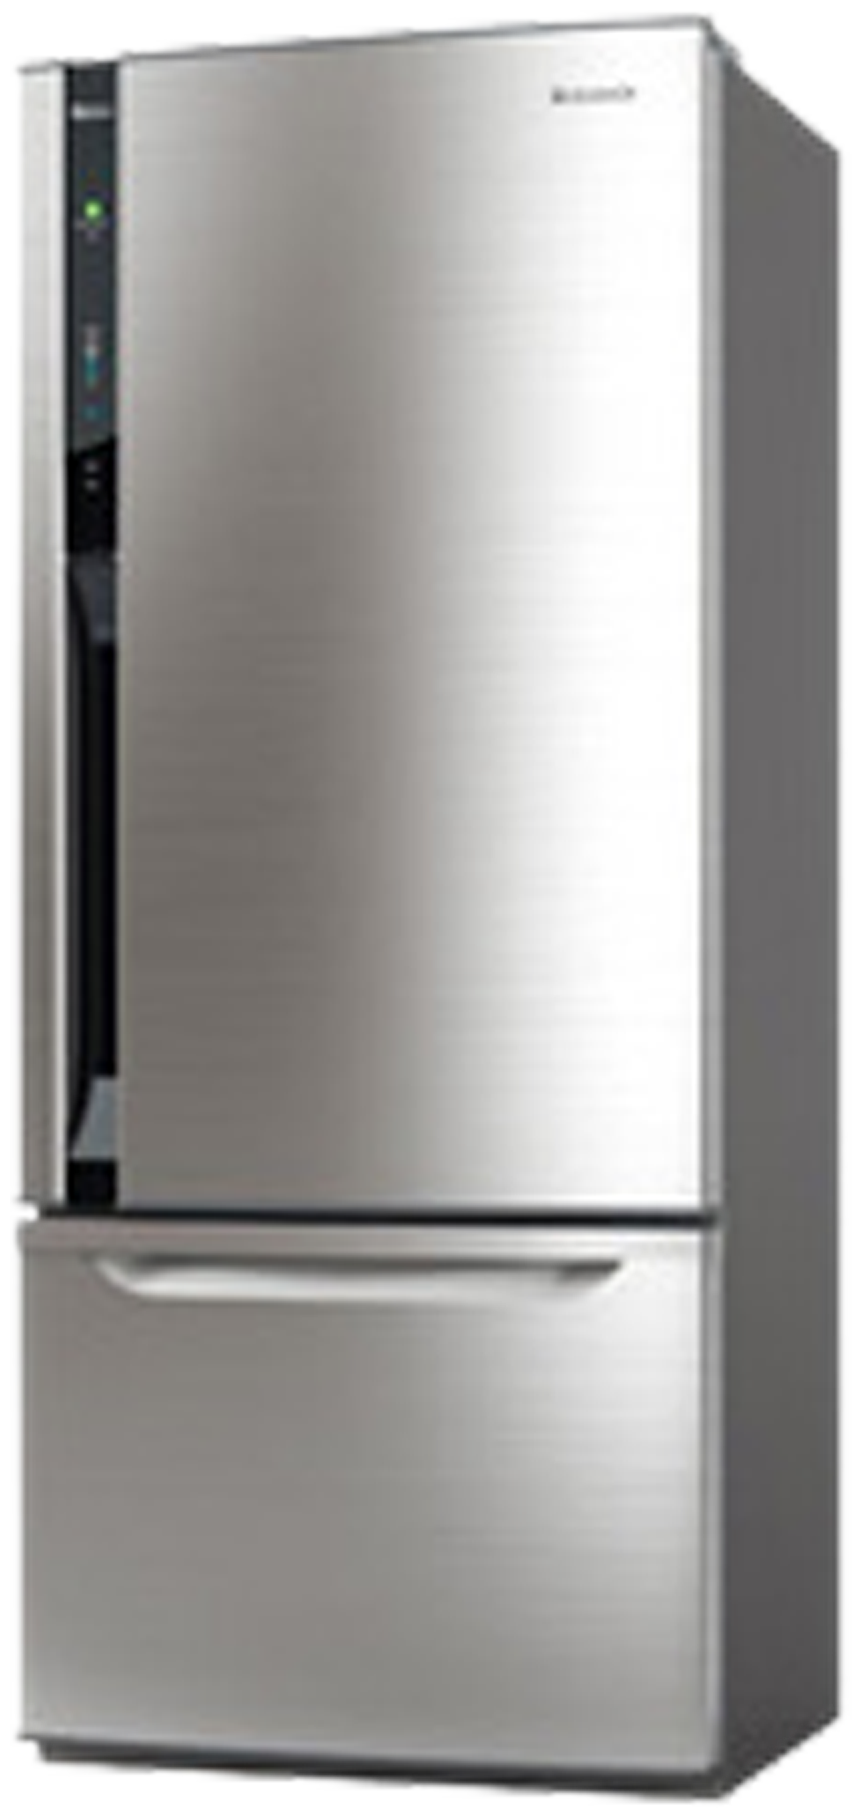 Panasonic 602 L Frost Free Double Door 5 Star Refrigerator (NRBY602XS, Silver)